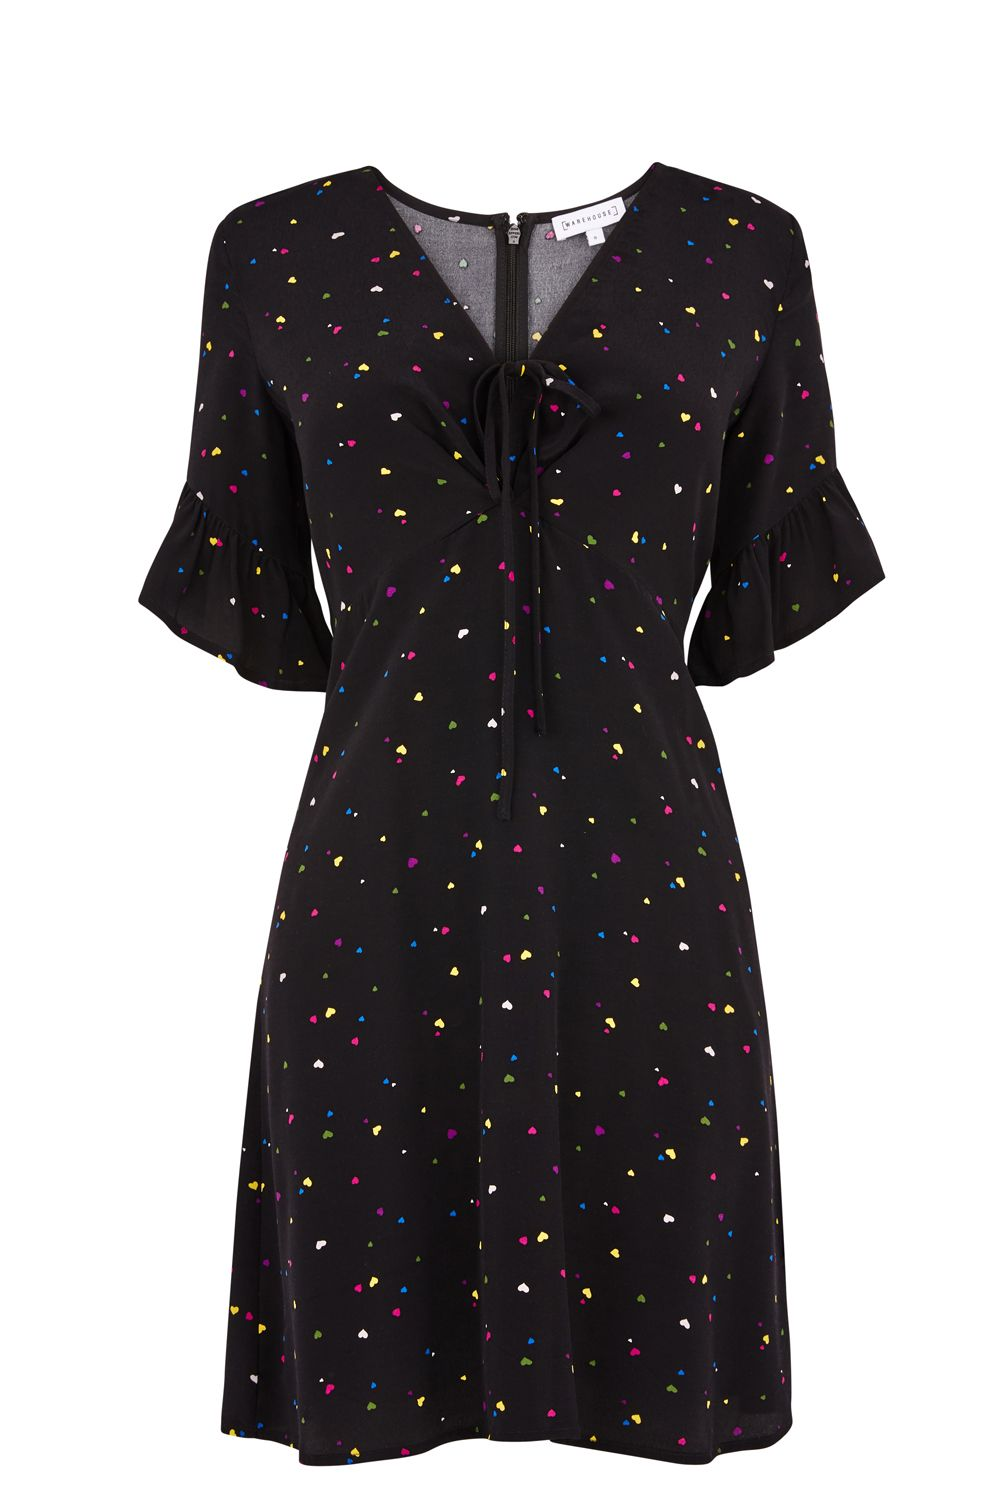 Warehouse Heart Print Tea Dress, Black